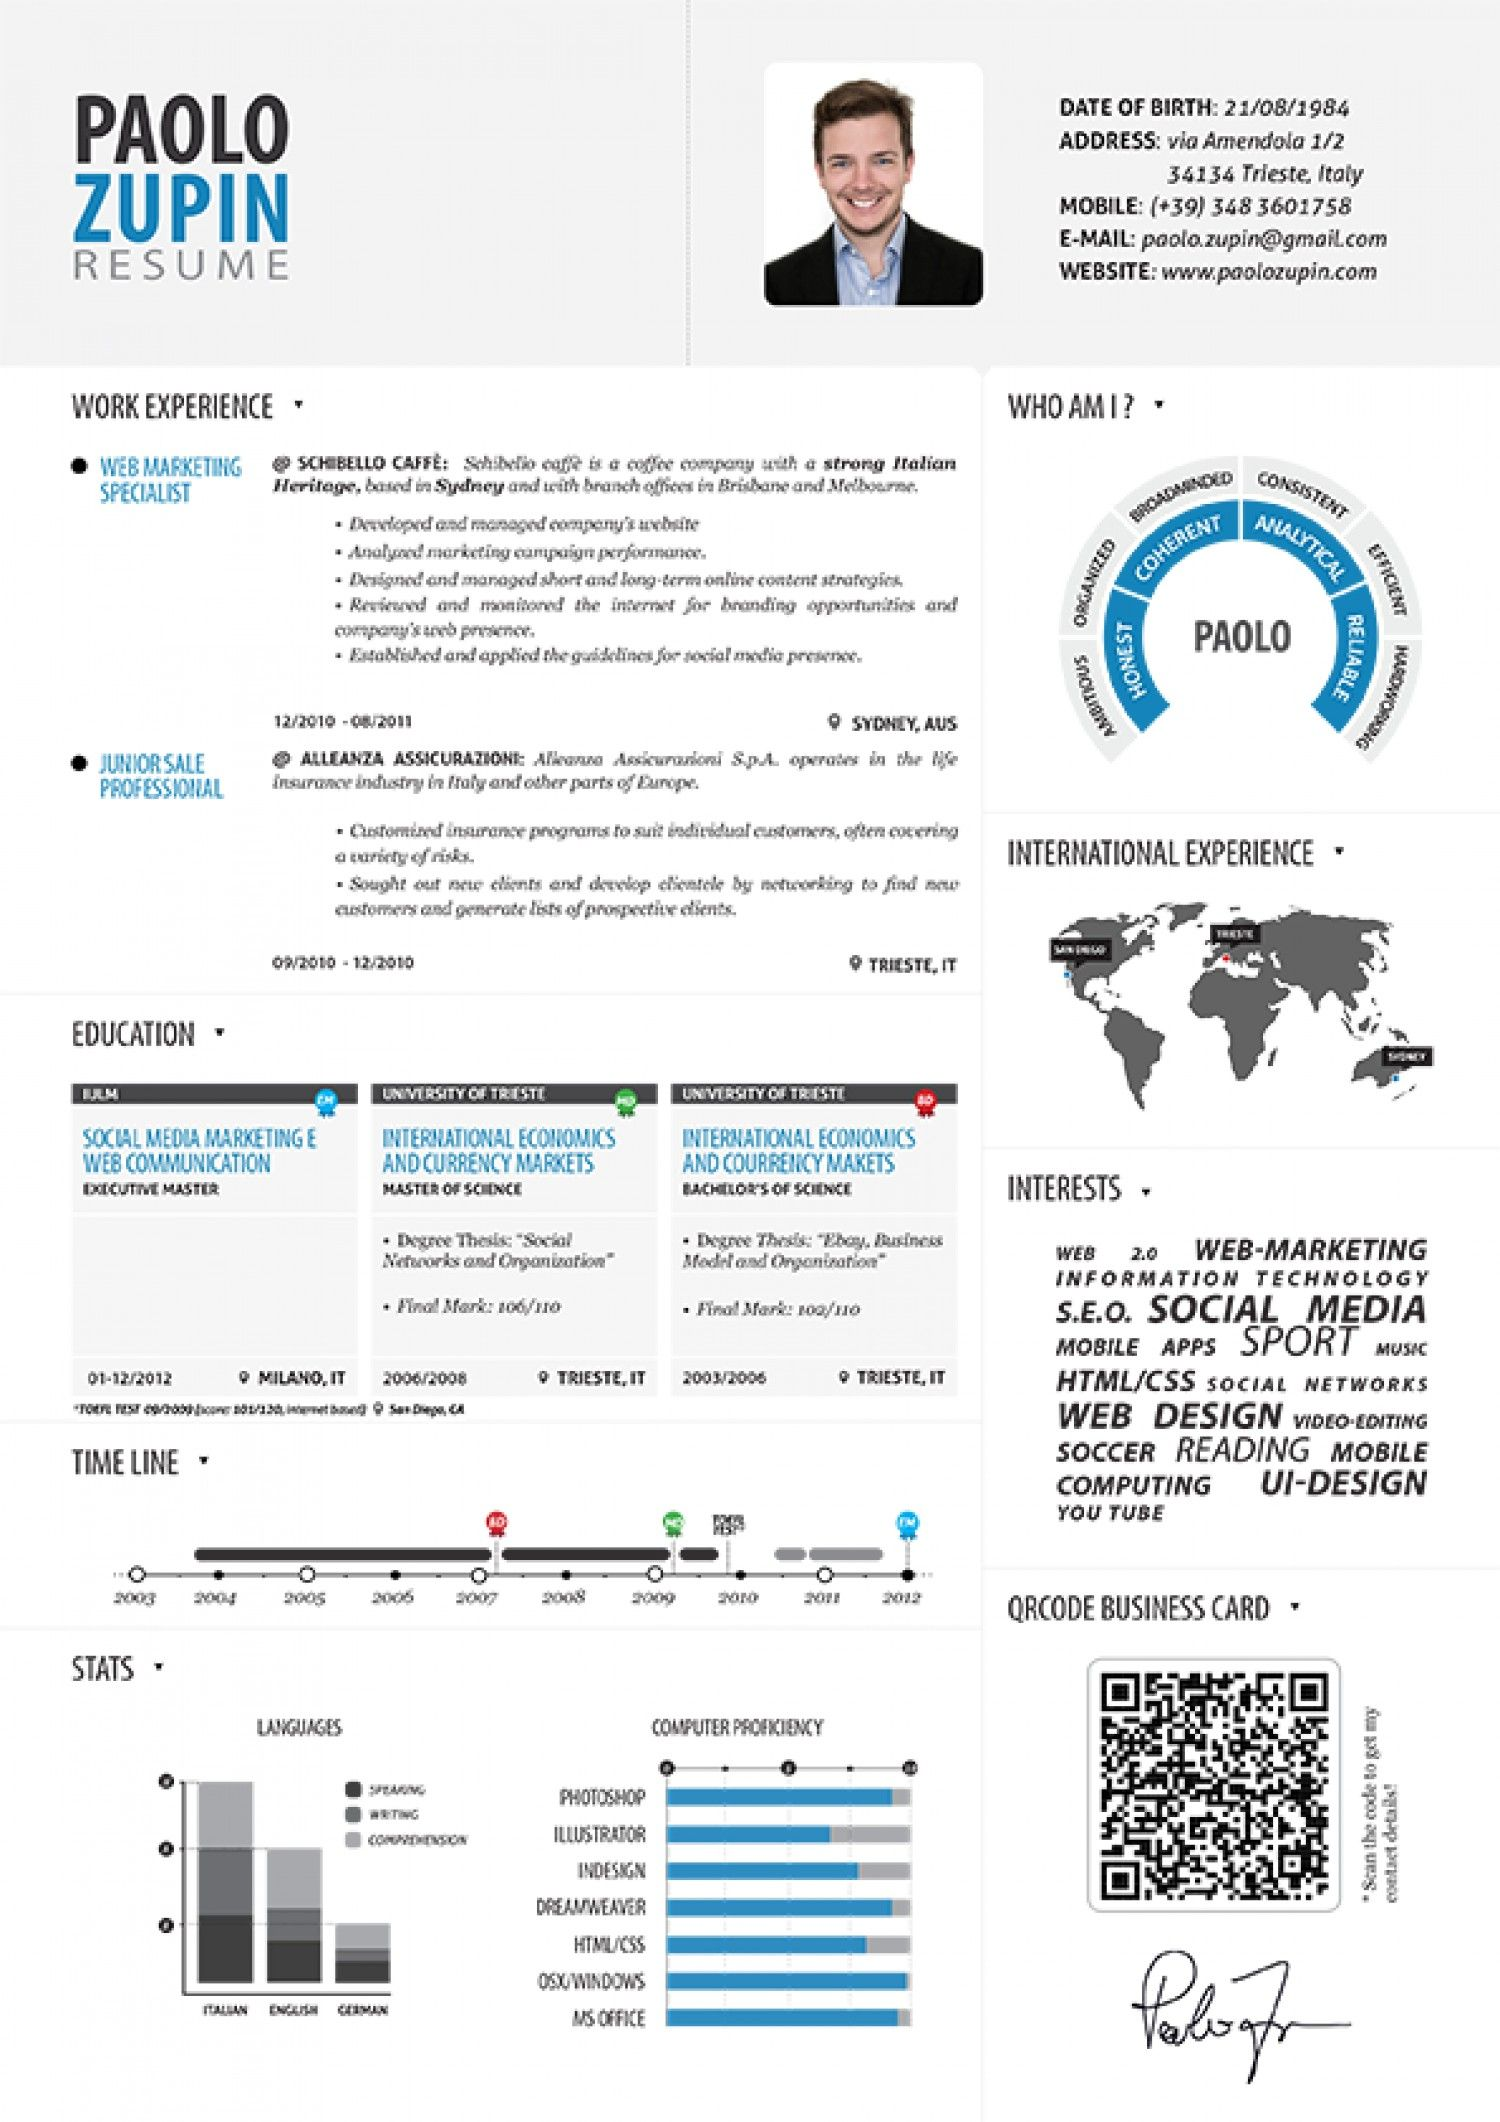 Opposenewapstandardsus  Remarkable  Images About Resume  Cv Design On Pinterest  Infographic  With Entrancing  Images About Resume  Cv Design On Pinterest  Infographic Resume Resume And Resume Design With Agreeable Entry Level Resume Example Also Email Resume Examples In Addition Free Resume Builder No Sign Up And Sample Social Worker Resume As Well As Blank Resume Templates For Microsoft Word Additionally Resume Follow Up Letter From Pinterestcom With Opposenewapstandardsus  Entrancing  Images About Resume  Cv Design On Pinterest  Infographic  With Agreeable  Images About Resume  Cv Design On Pinterest  Infographic Resume Resume And Resume Design And Remarkable Entry Level Resume Example Also Email Resume Examples In Addition Free Resume Builder No Sign Up From Pinterestcom